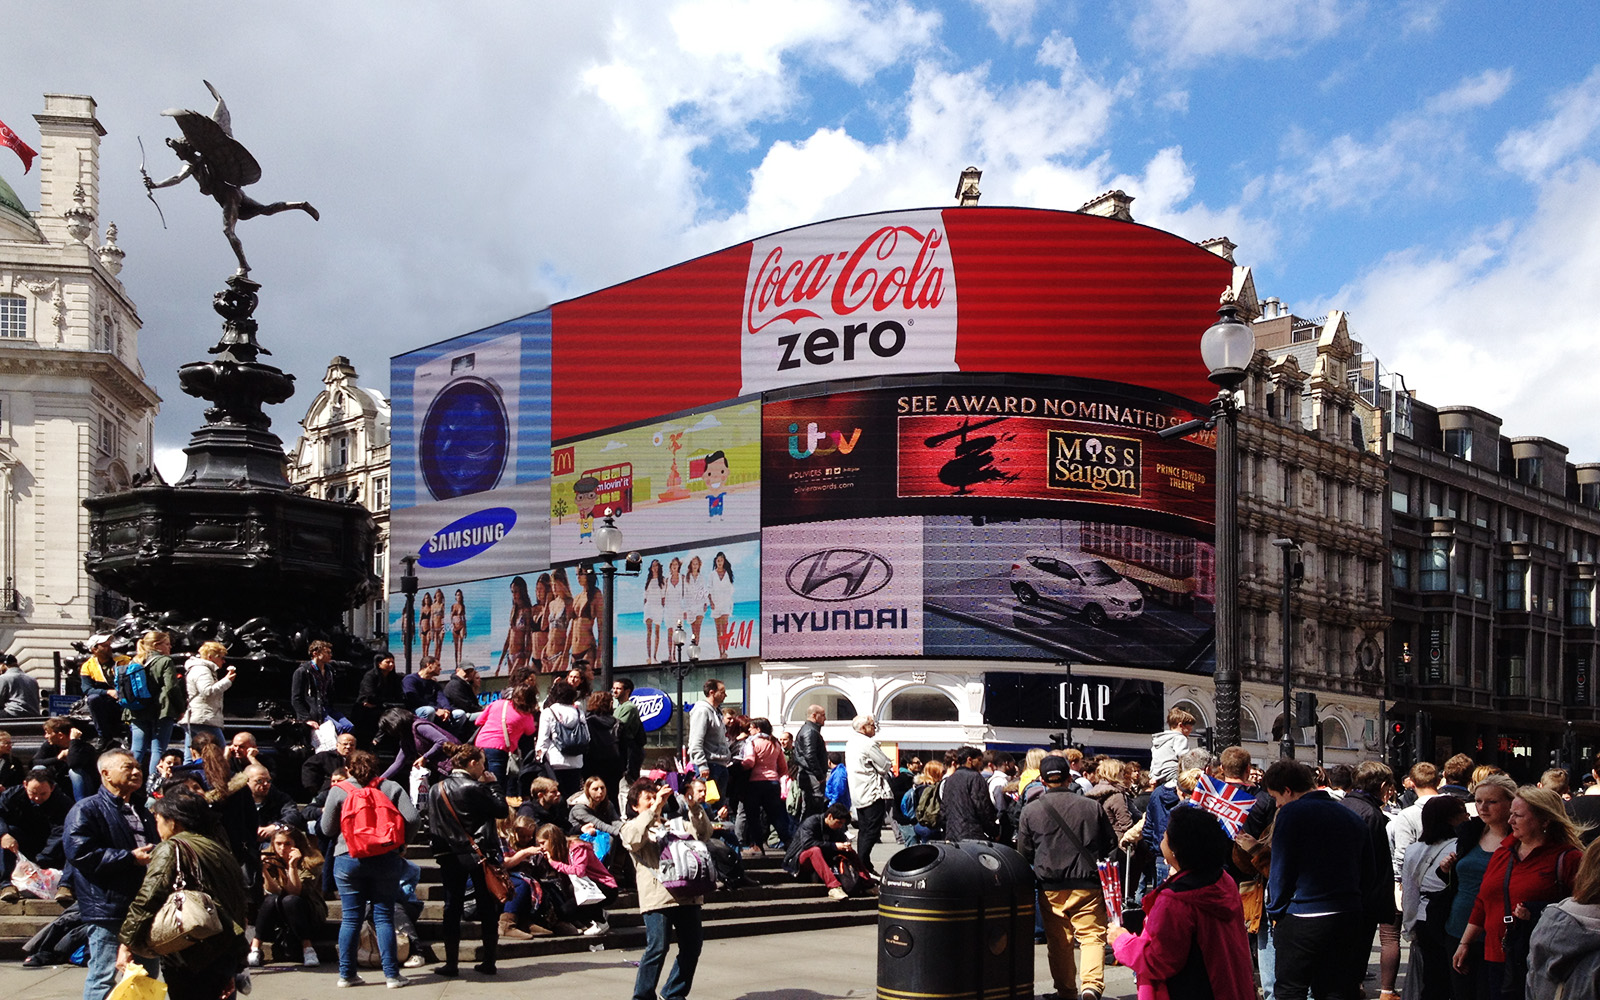 Piccadilly Circus 2 May 2015